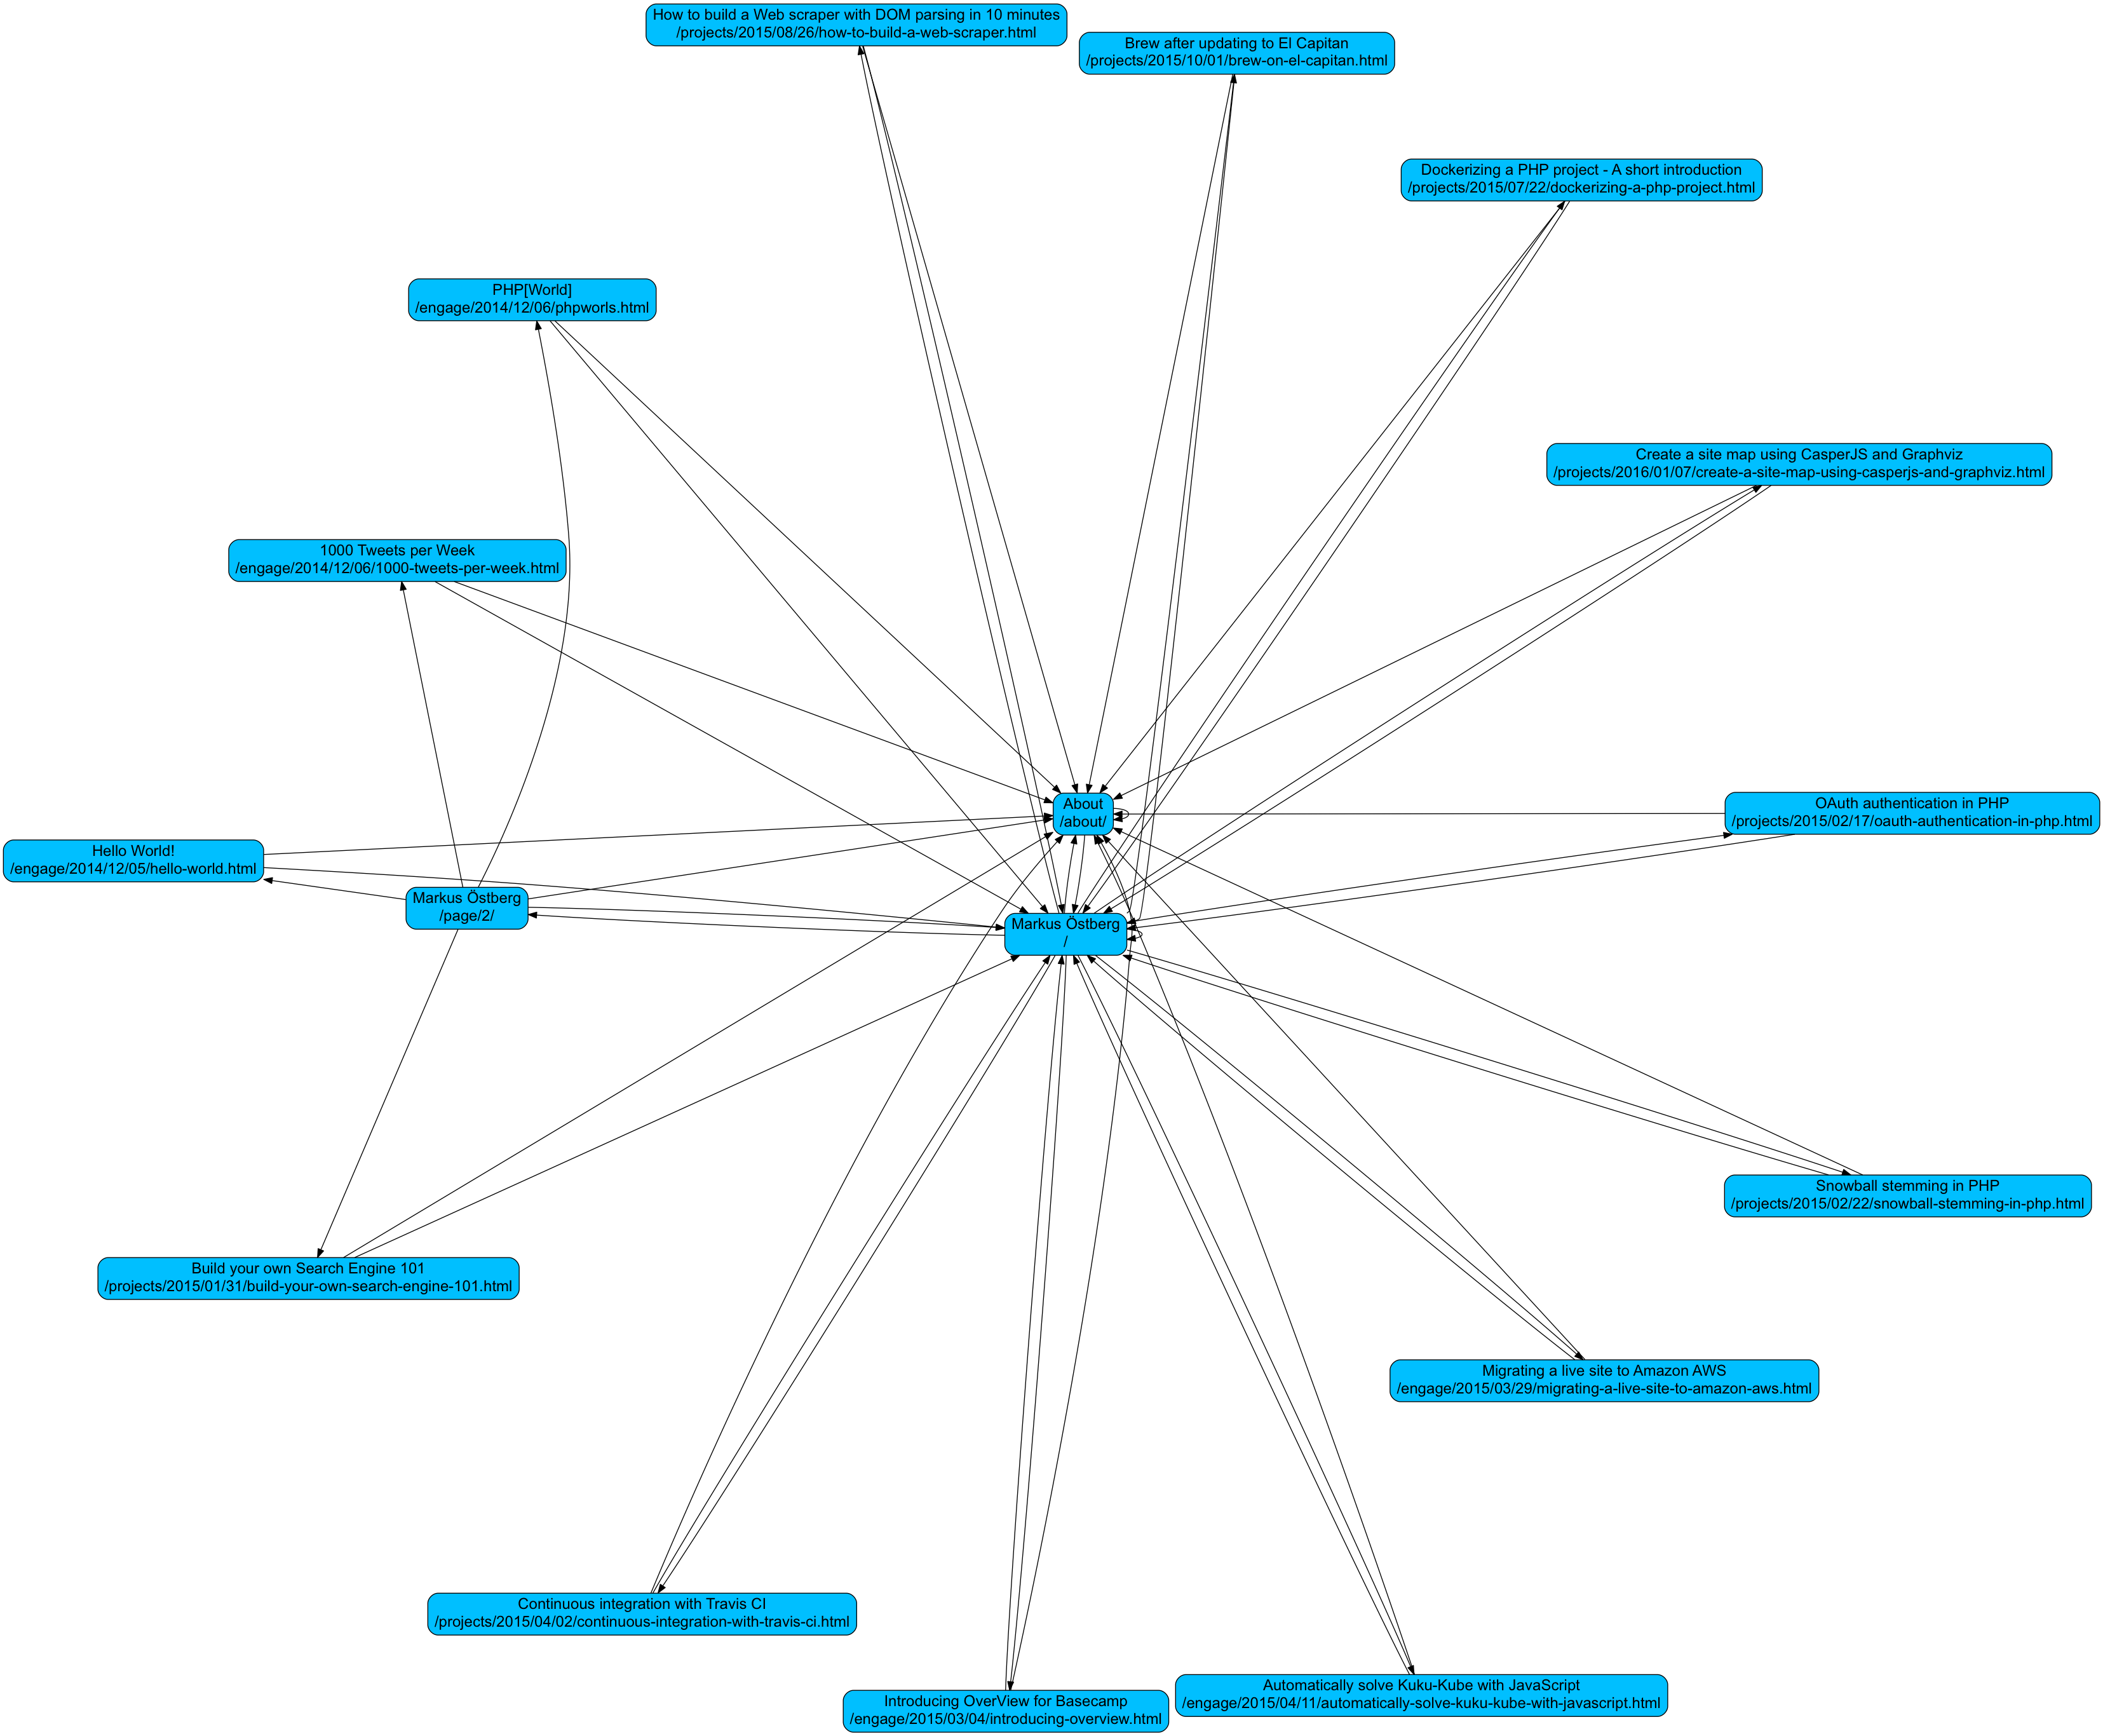 Graphviz dot to png. Create a site map